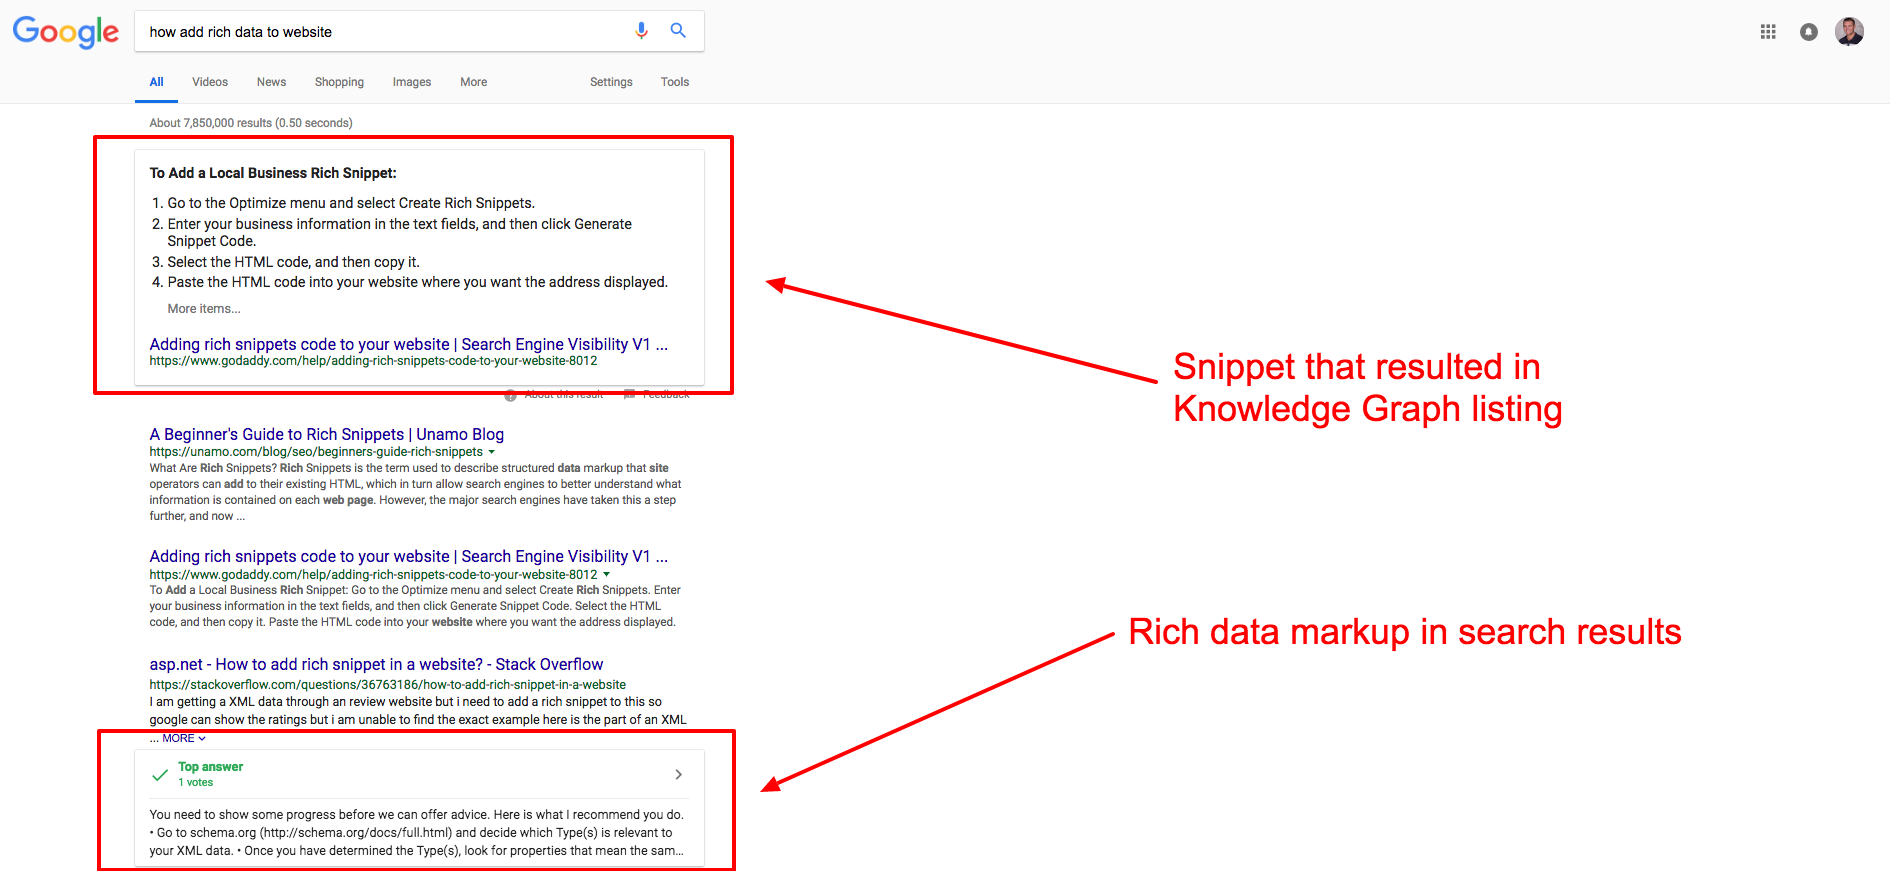 3 New Ways To Improve Google Mobile Results (Post-Mobile First Index